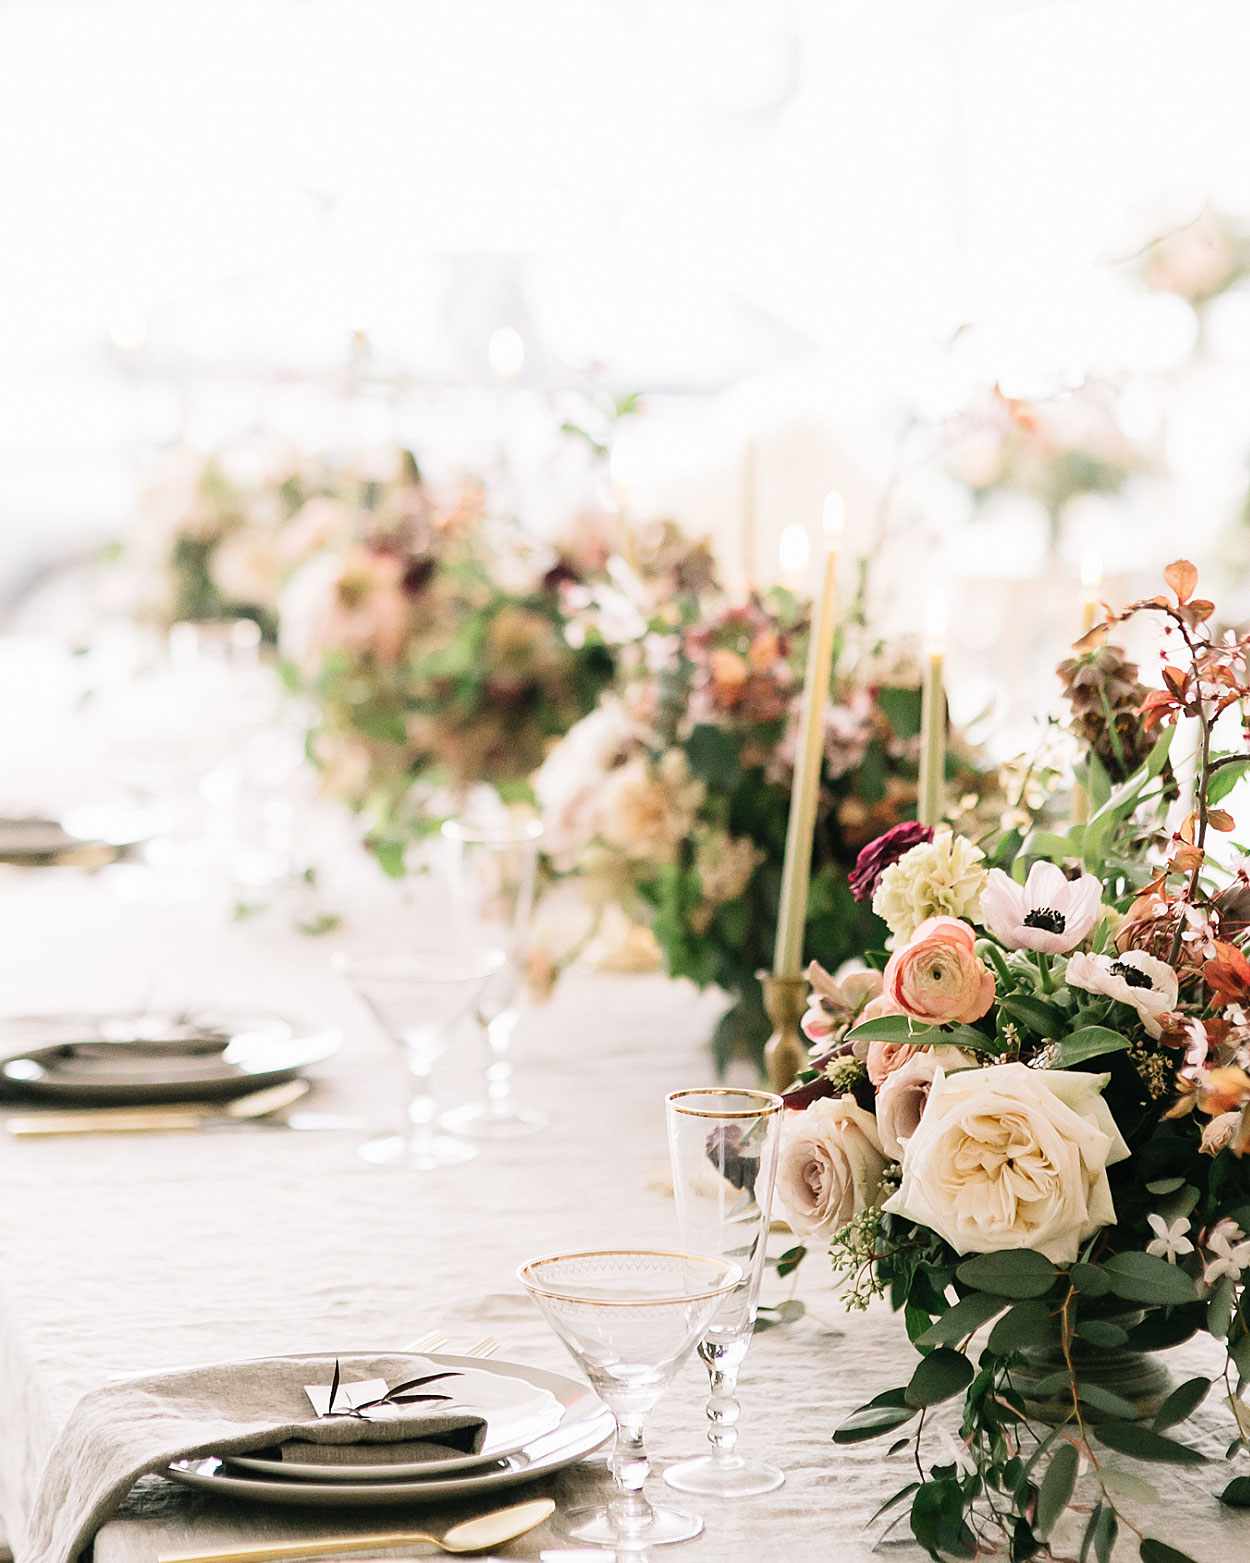 romantic-wedding-flowers-table-styling-0516.jpg